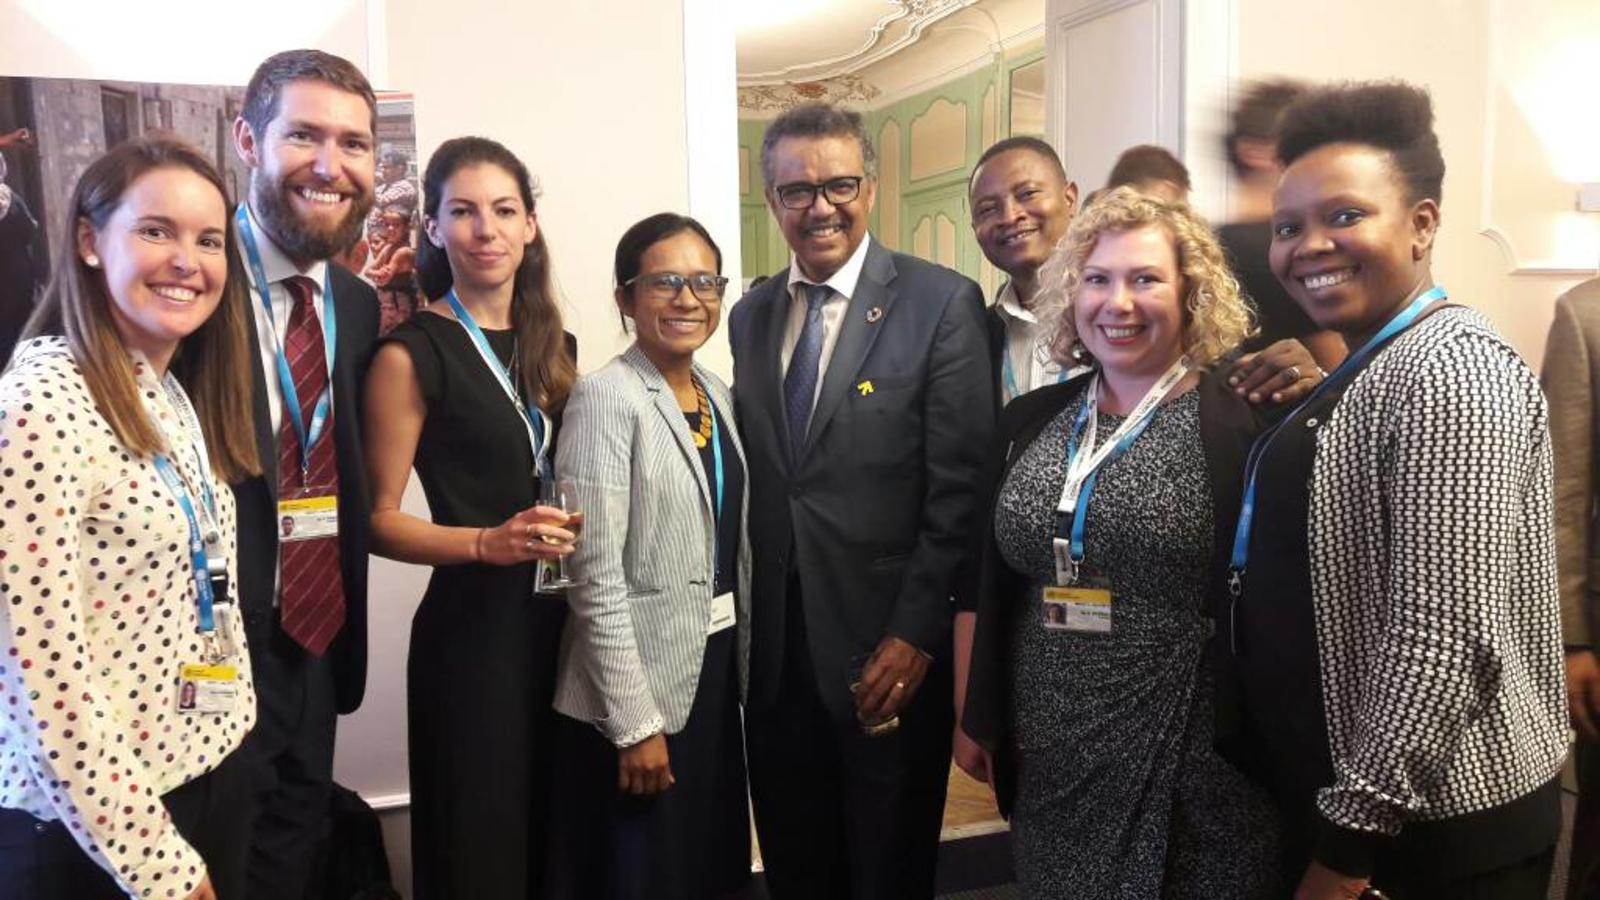 WaterAid's advocates meet WHO Director-General Dr Tedros Ghebreyesus at the World Health Assembly 2018